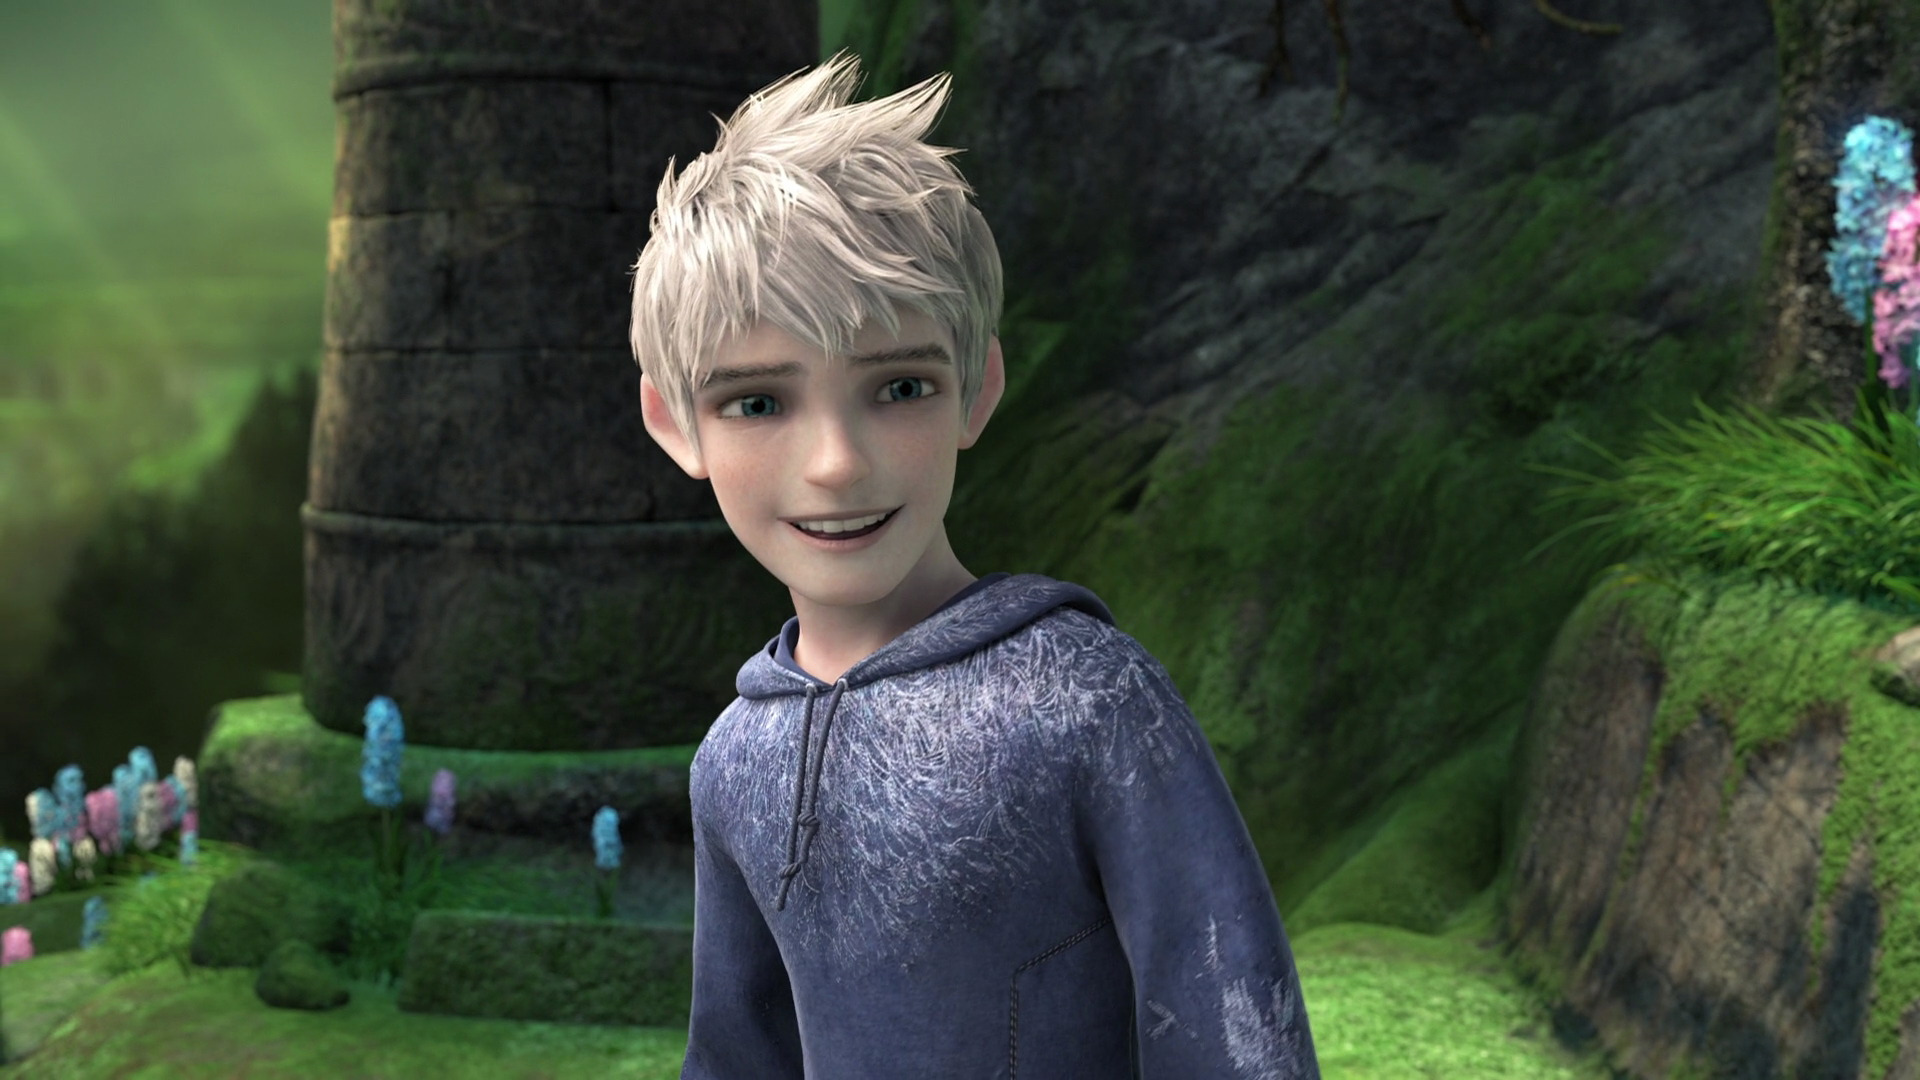 Jack Frost - Wikipedia Pictures of jack frost from rise of the guardians